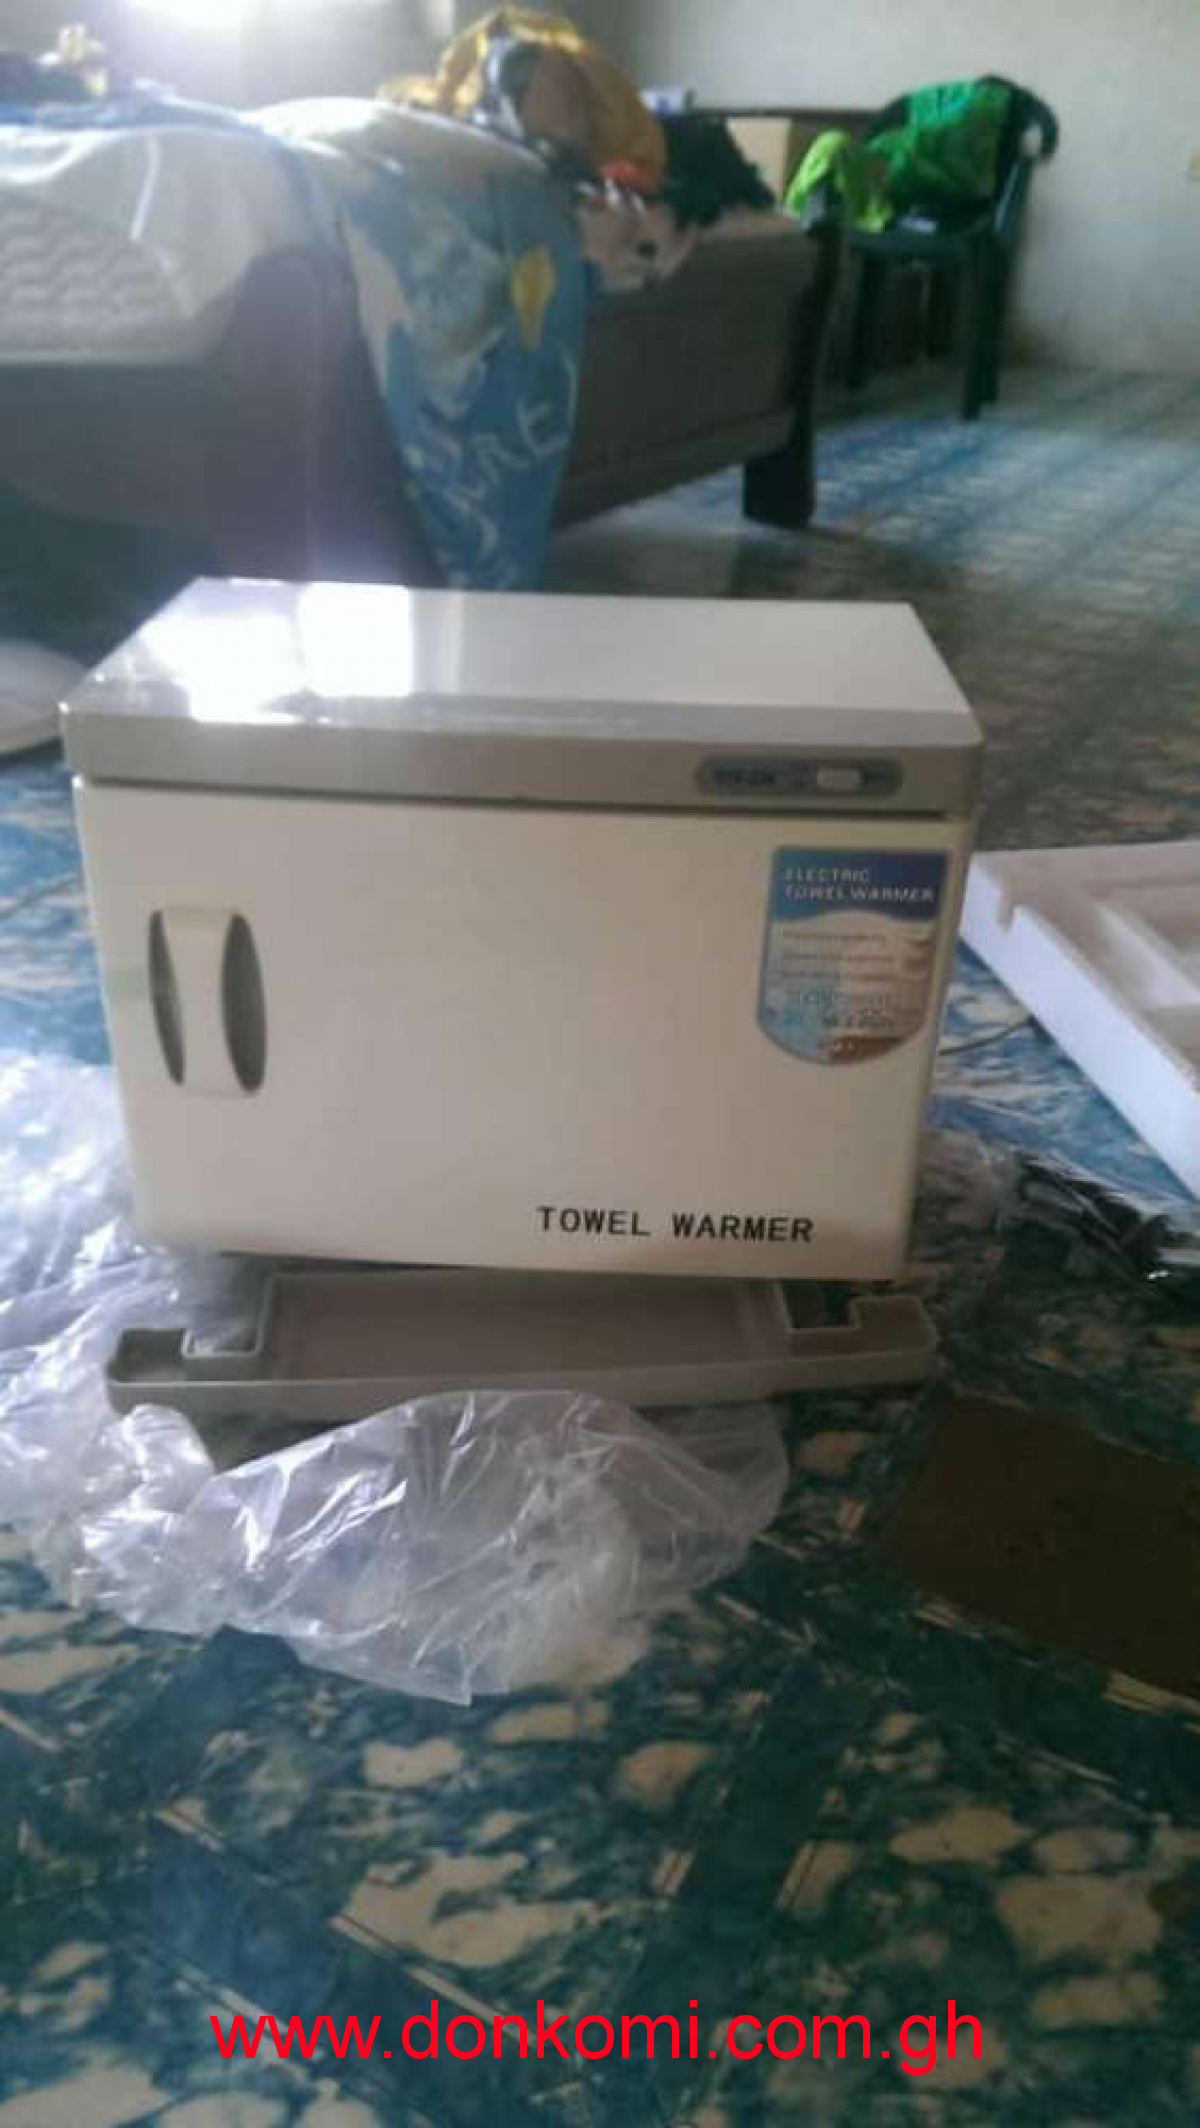 Towel warmer for sale